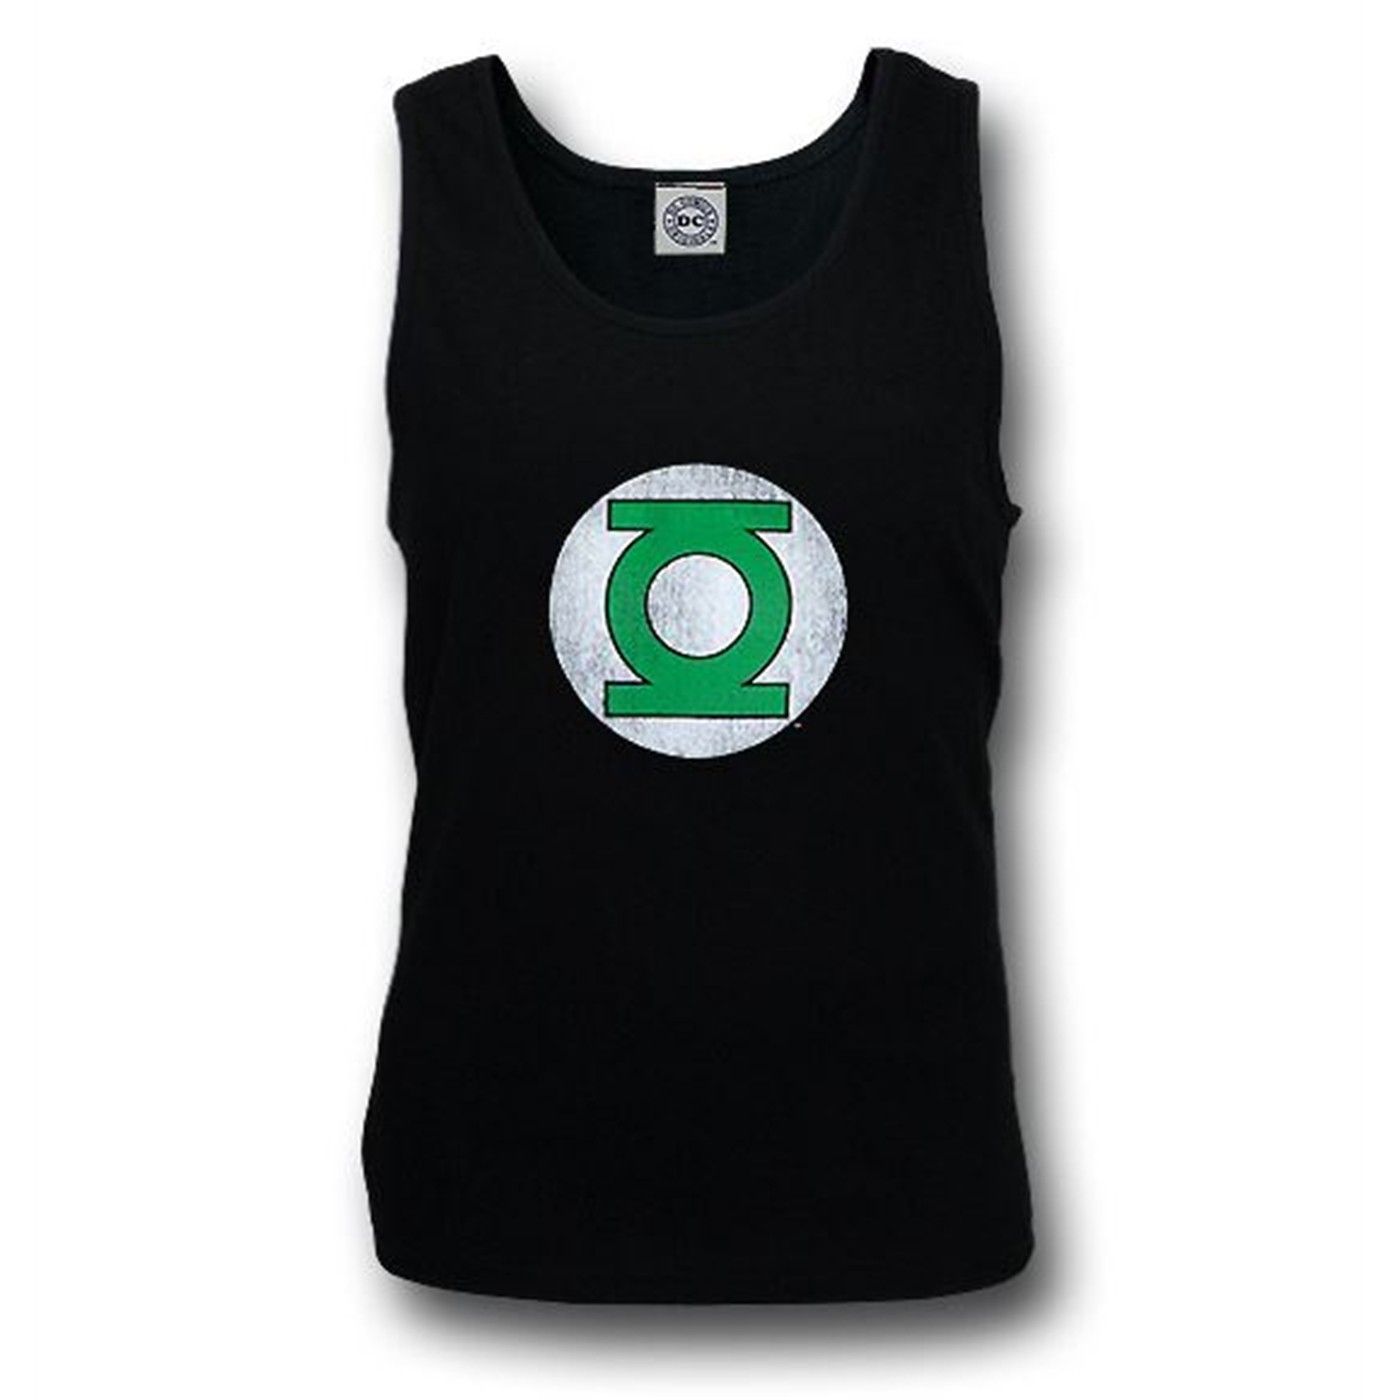 Green Lantern Distressed Black Tank Top